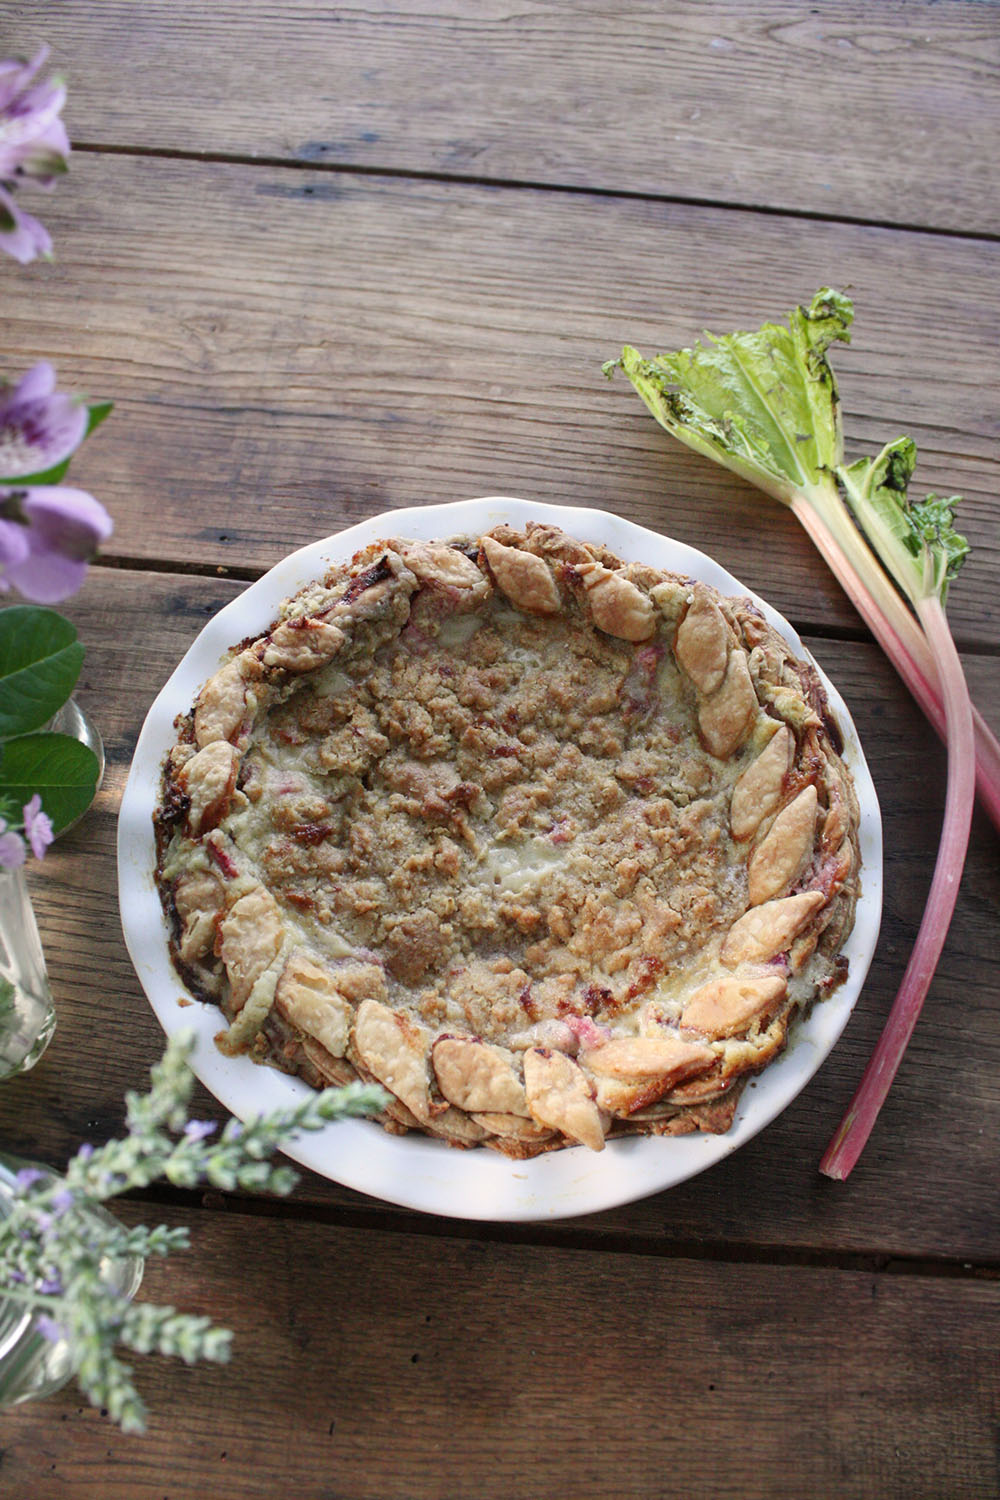 Arley Cakes rhubarb pie